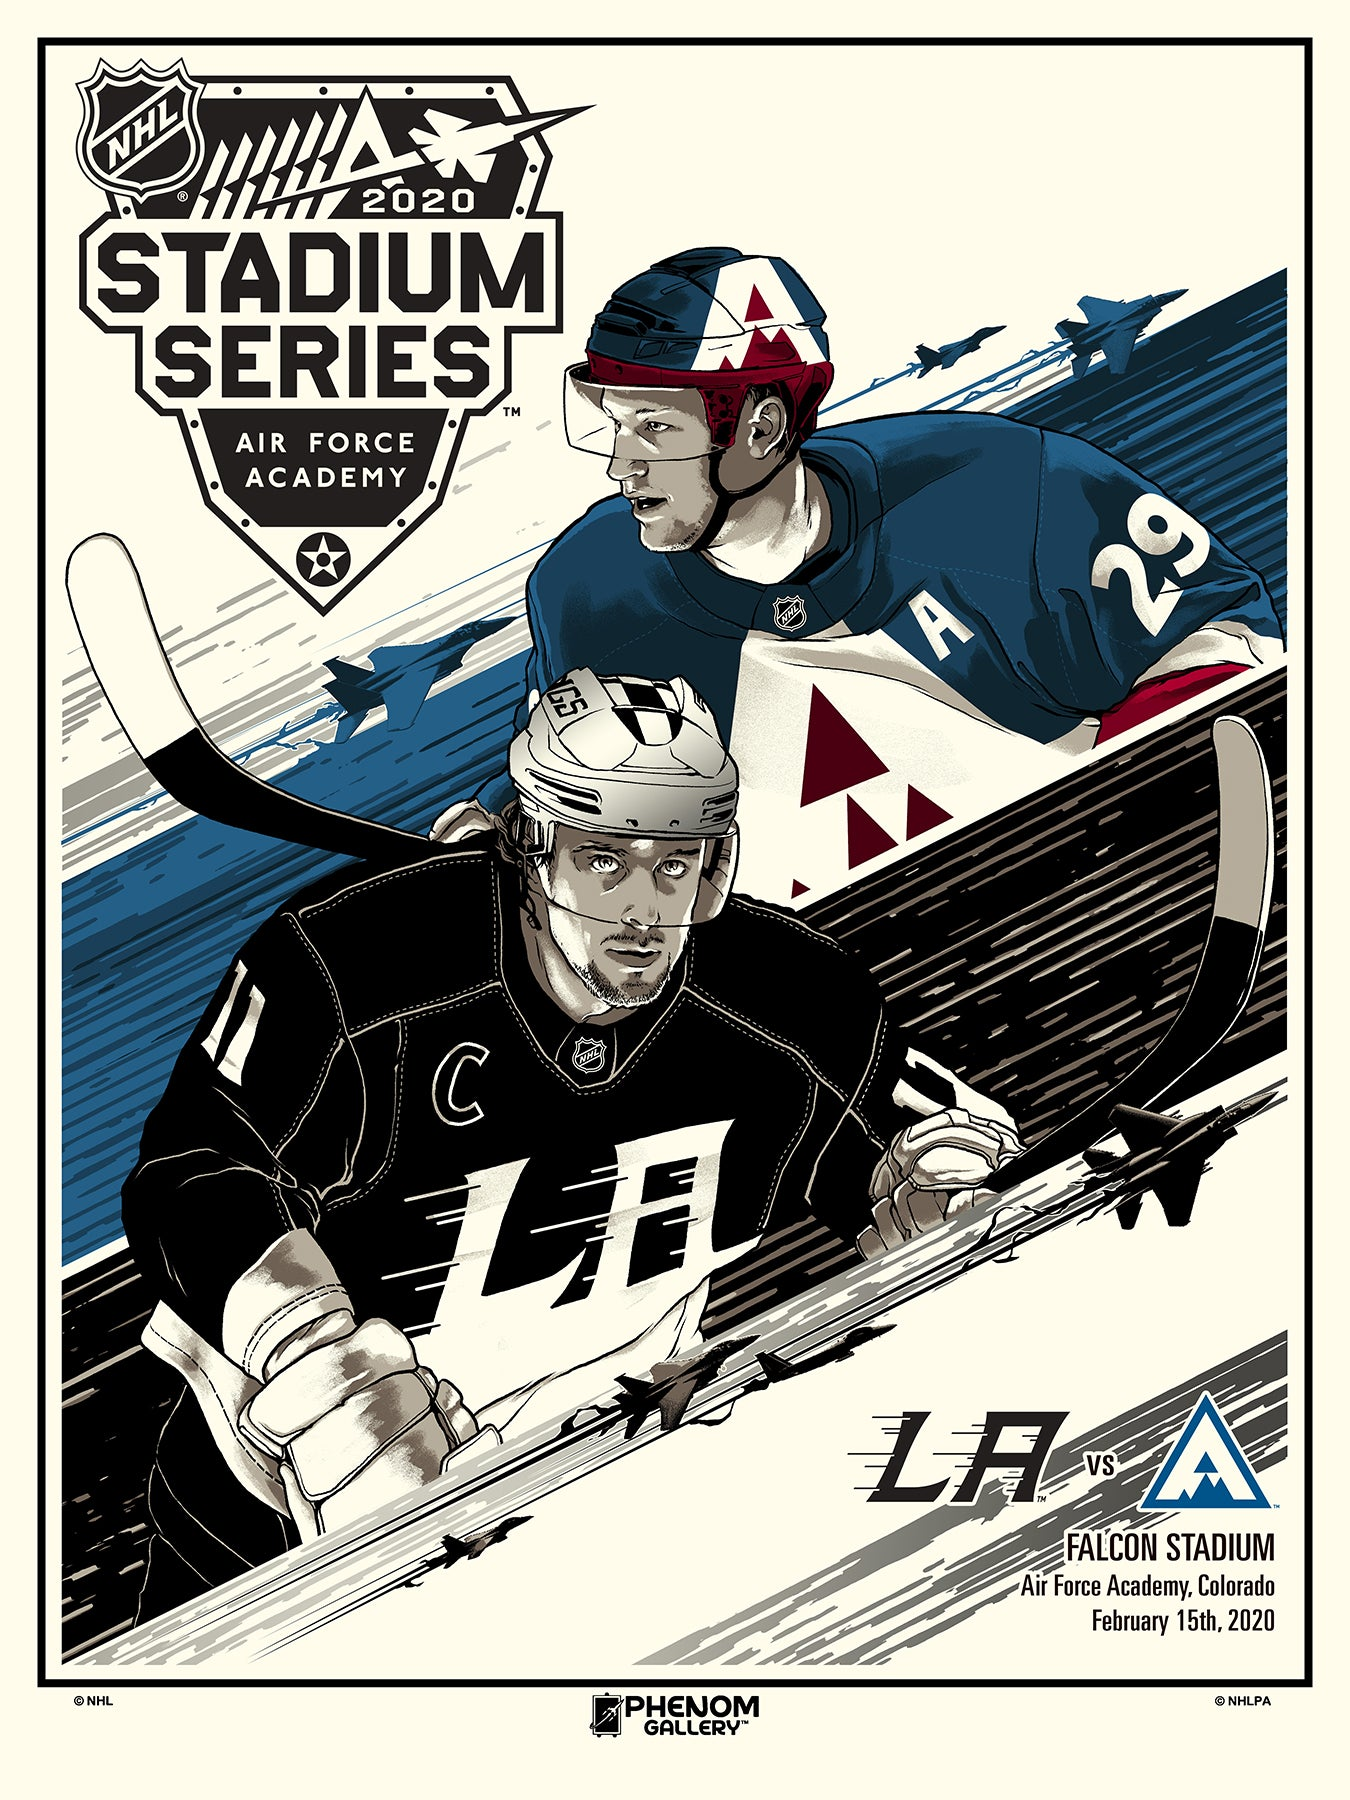 NHL Winter Classic 2020 - Avalanche vs Kings Serigraph (Printer Proof)